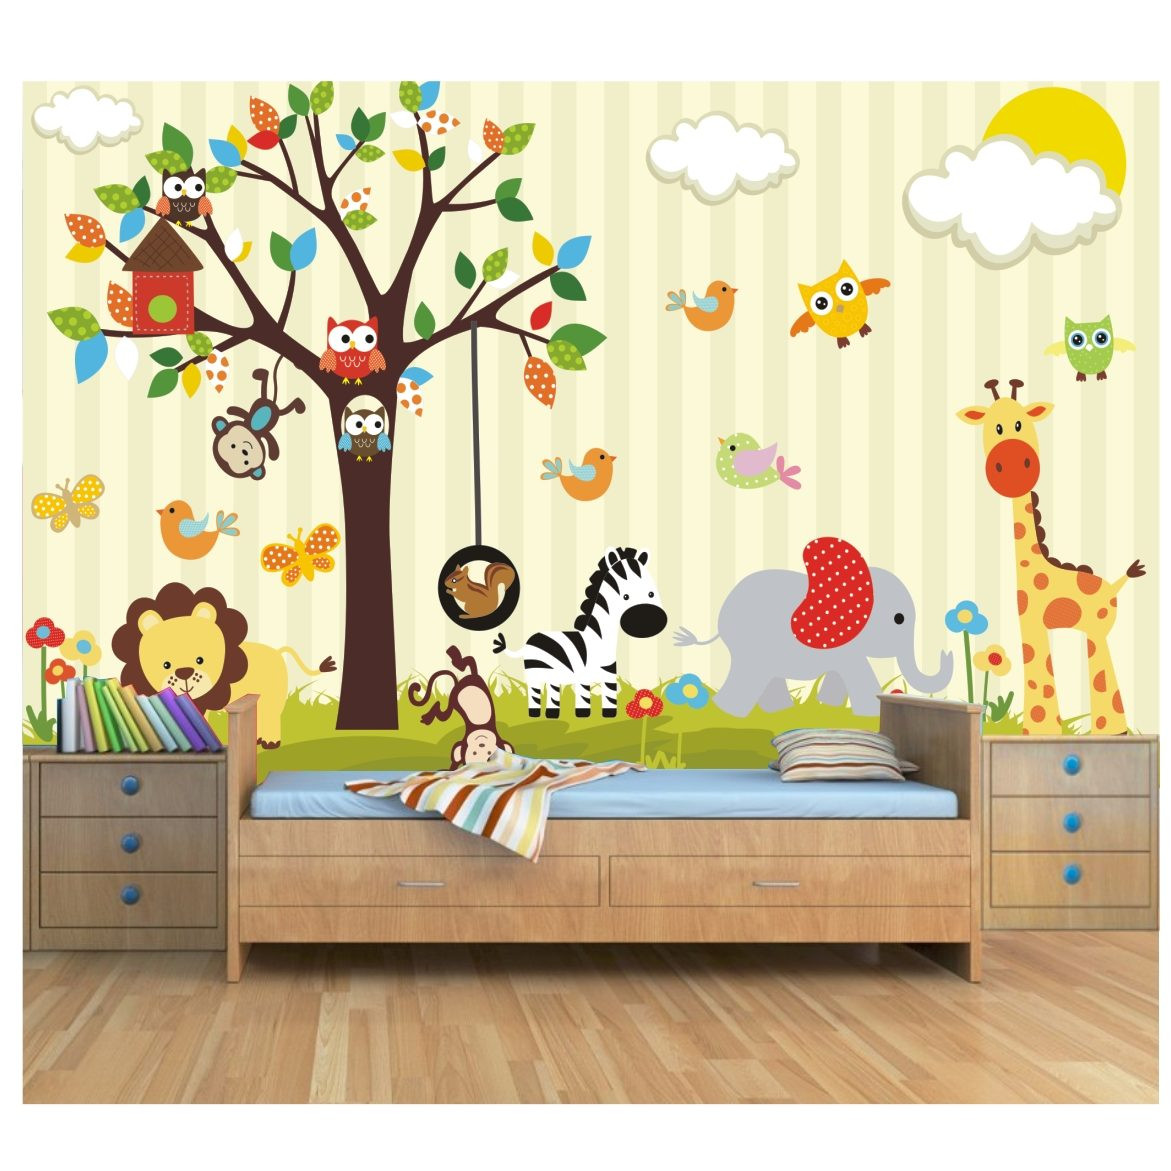 Papel Para Pared Infantil Fresco Papel De Parede Para Quarto Infantil Personagens Of 48  Increíble Papel Para Pared Infantil